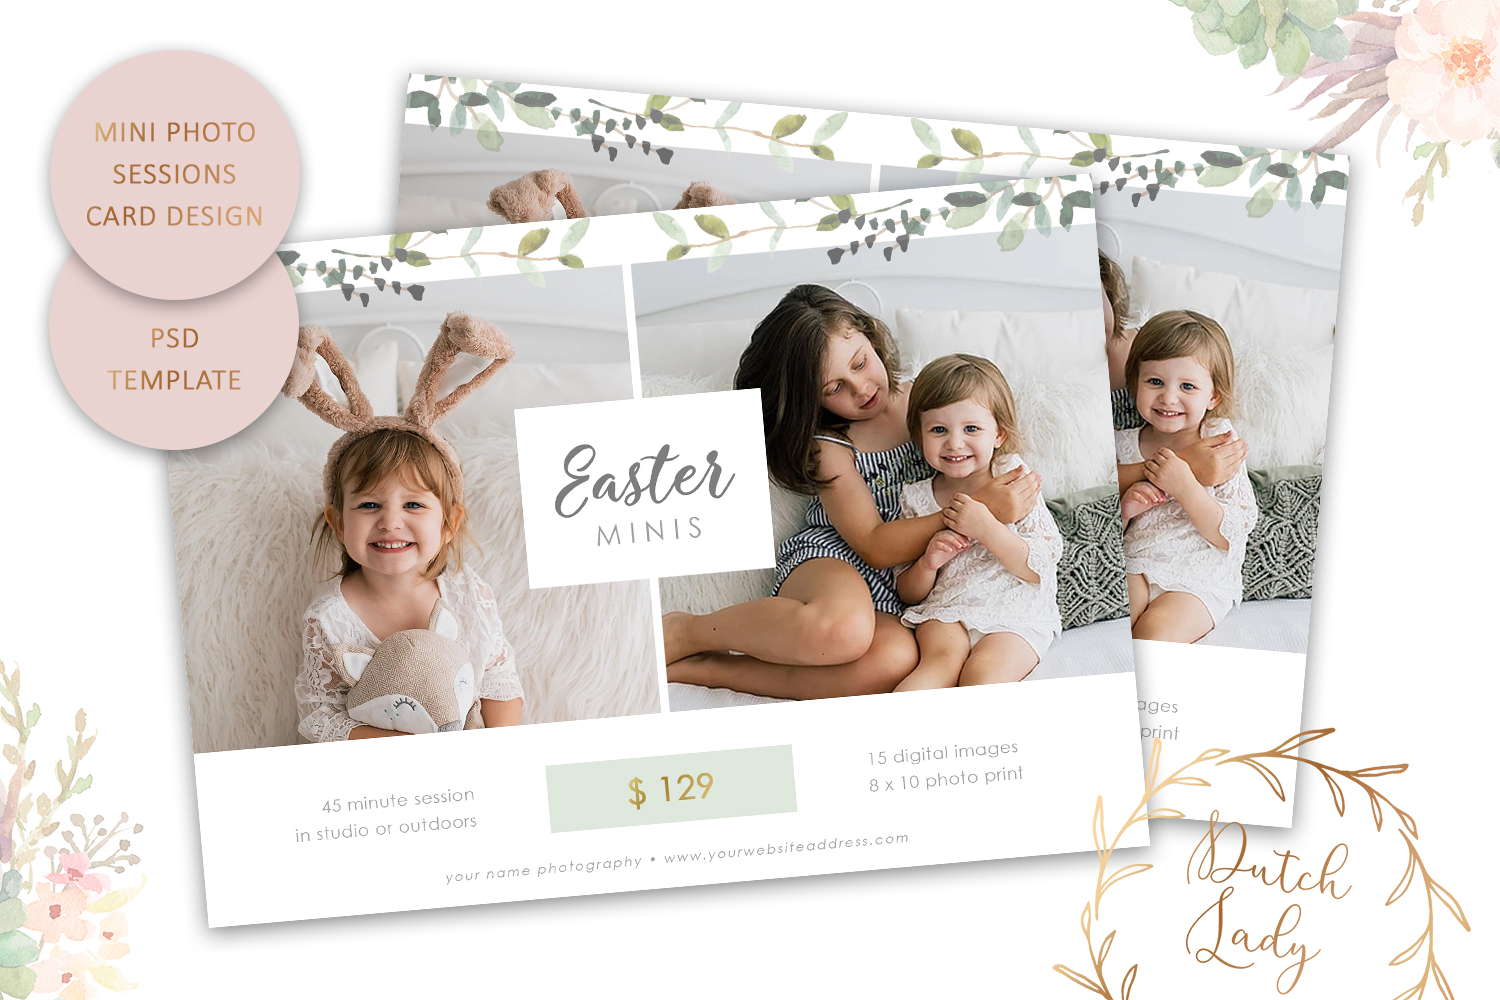 PSD Easter Photo Session Card Template - Design #50 example image 1